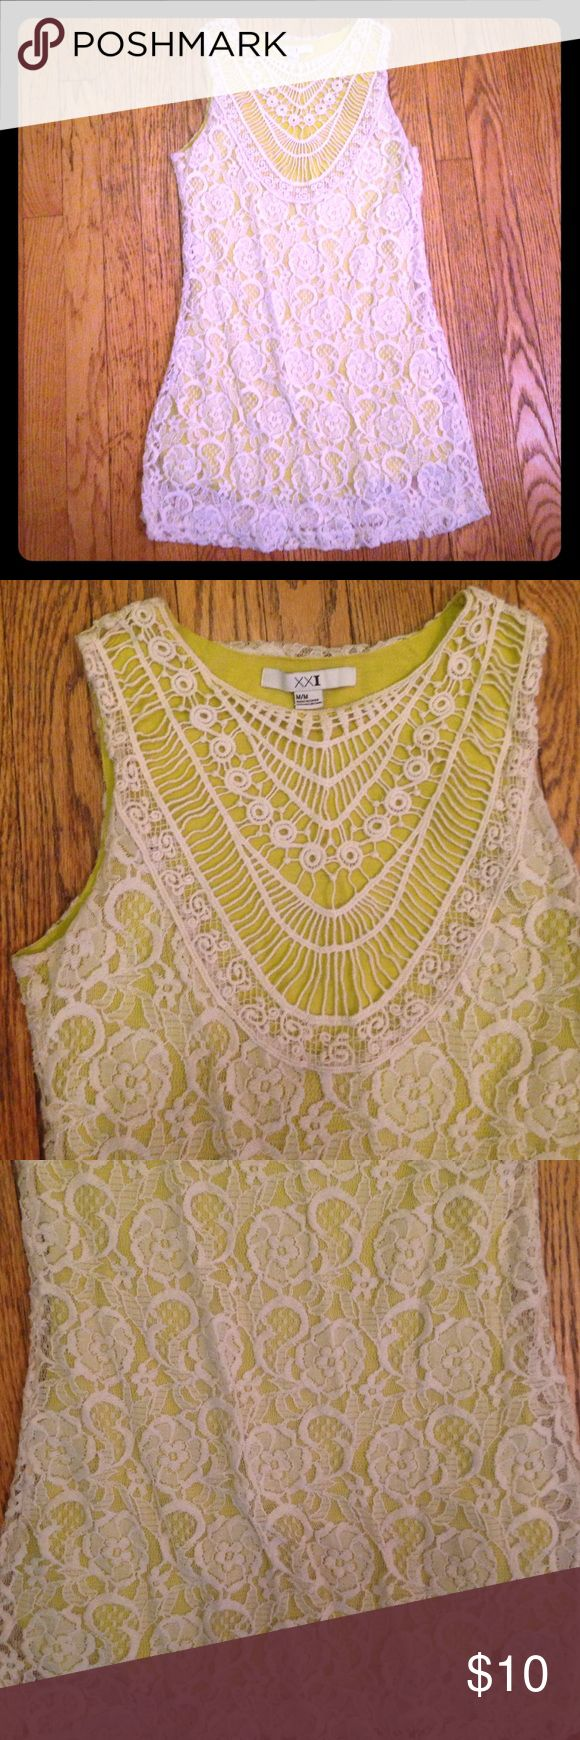 """Forever 21 boho lace & crochet festival dress Ivory and lime green dress. Bust 36"""" waist 31"""" hips 36"""". Material 51% cotton 43% nylon 6% rayon Forever 21 Dresses"""